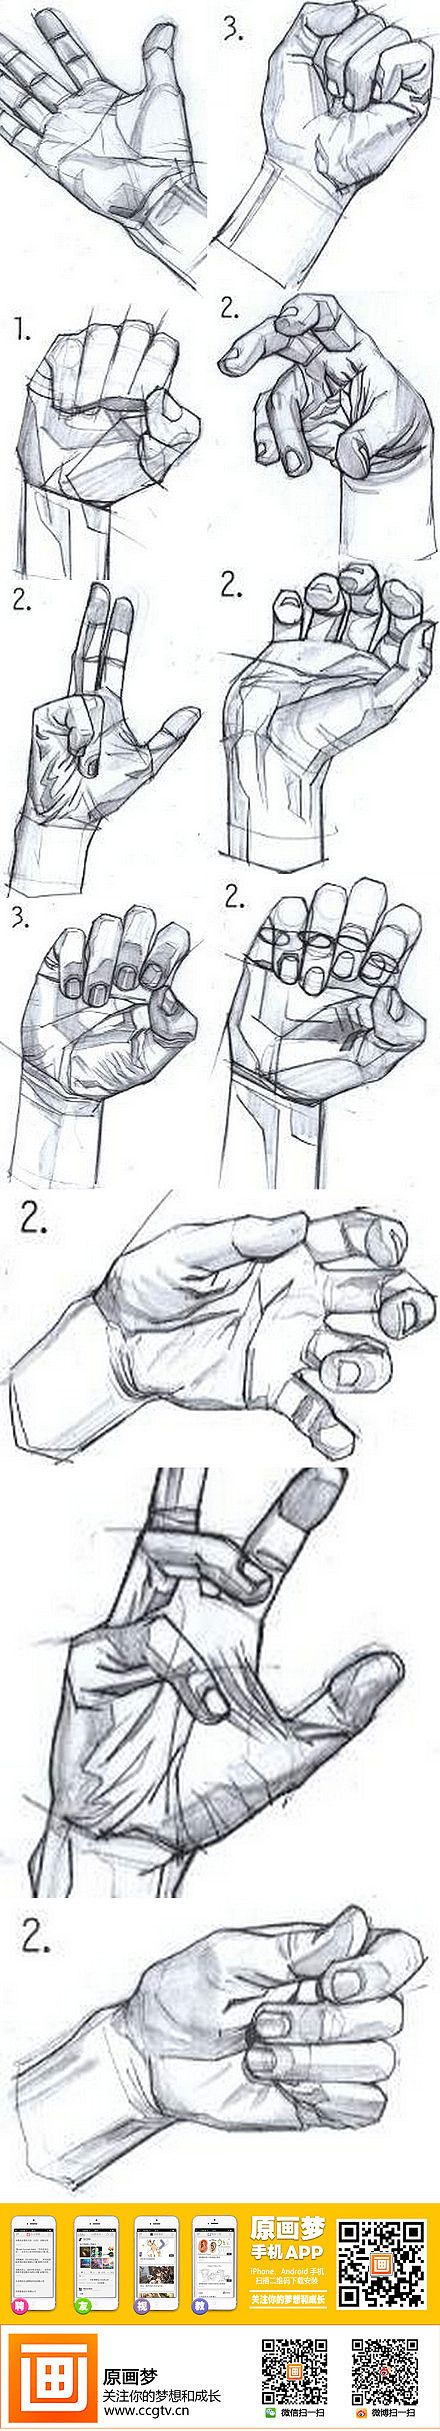 Construction of the hand for drawing.